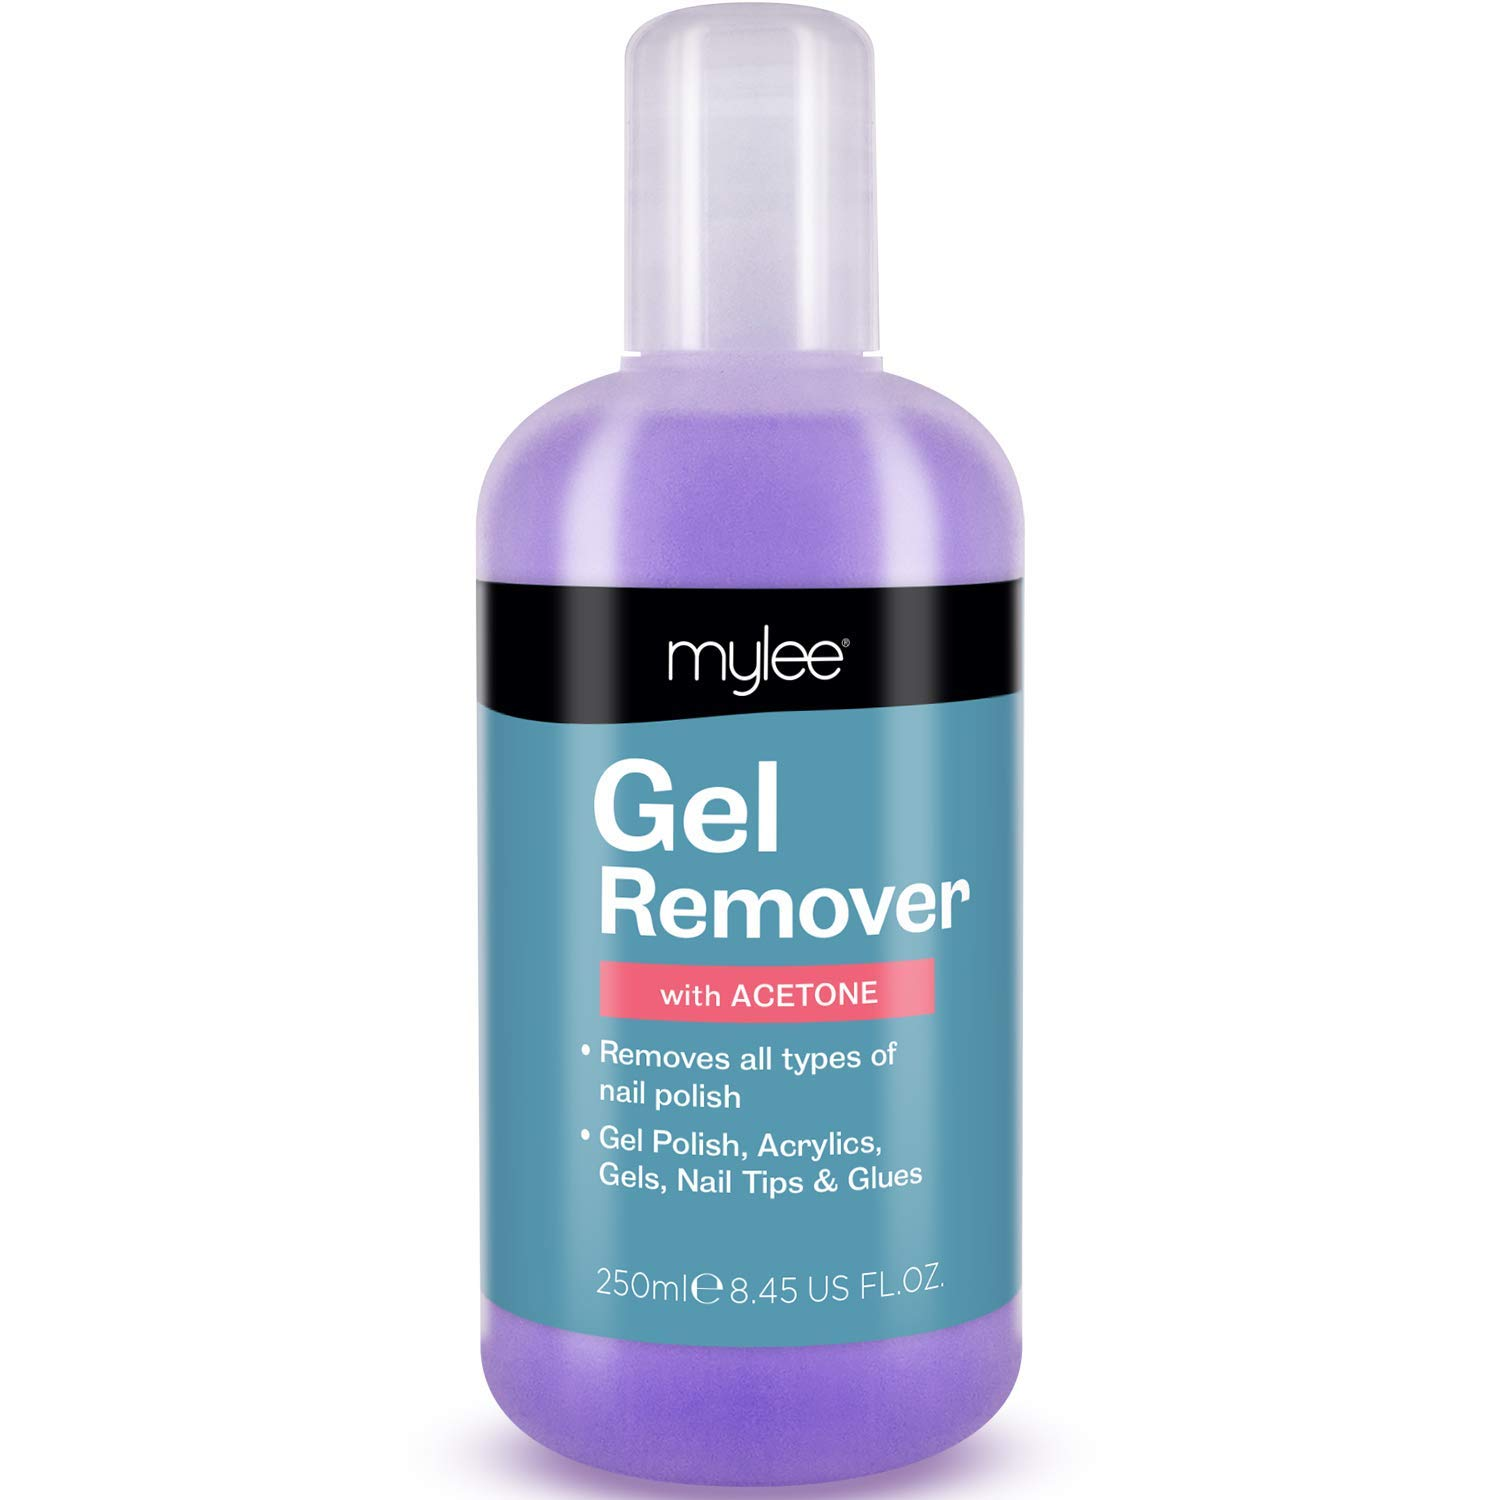 Mylee Gel Polish Remover Acetone 250ml, Salon Professional UV LED Nail Polish Cleaner for Manicures and Pedicures